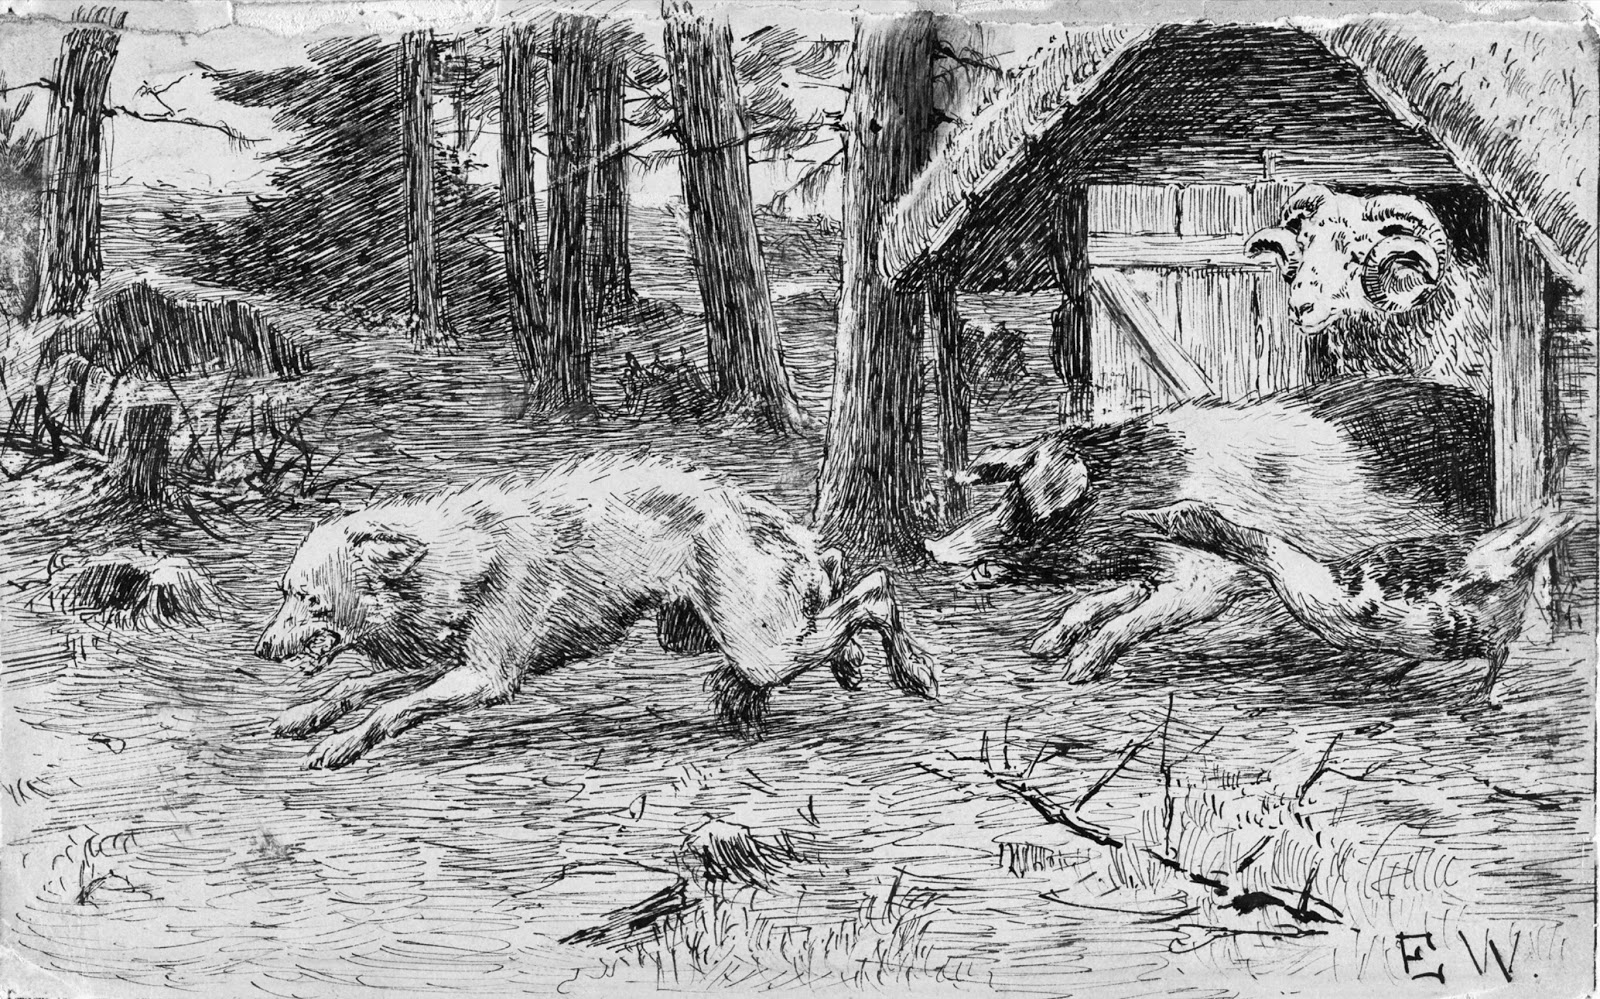 Wolf chased by pig, by Erik Werenskiold.